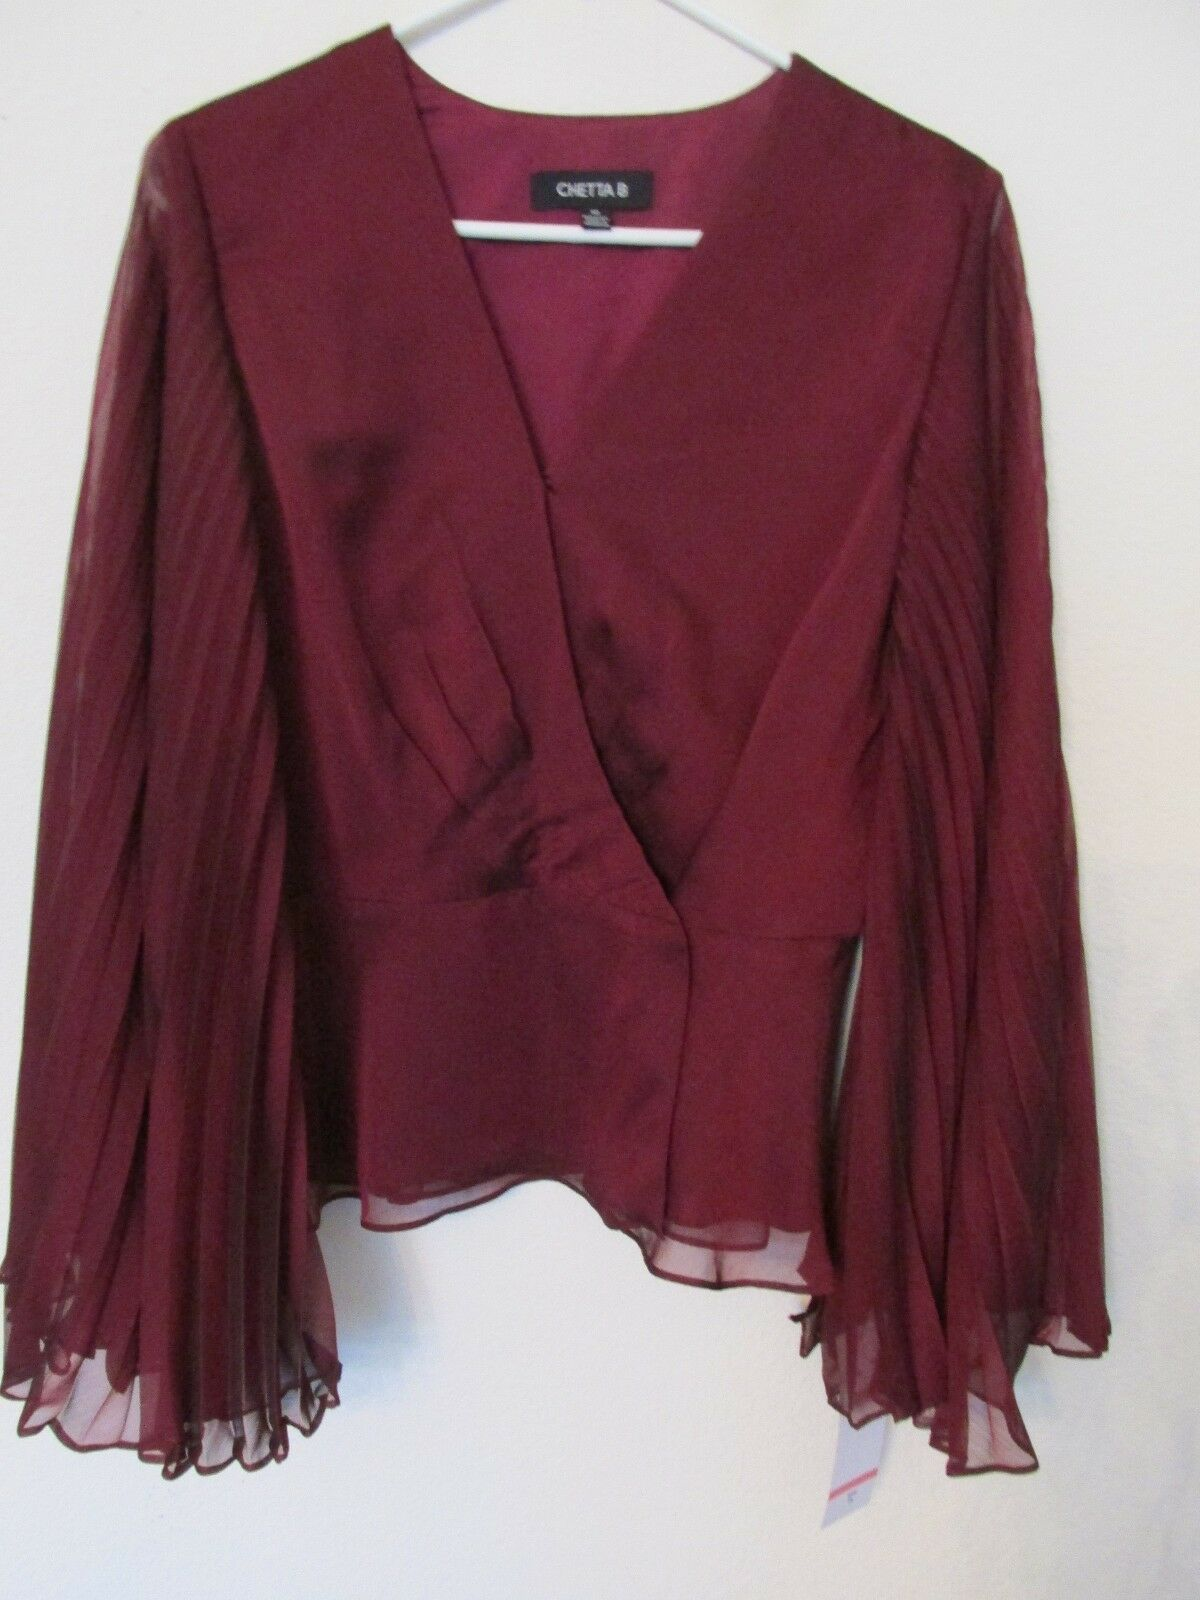 New Women's Chetta B Wrap Dressy Blouse Sheer Pleated Sleeves Merlot Red Size 10